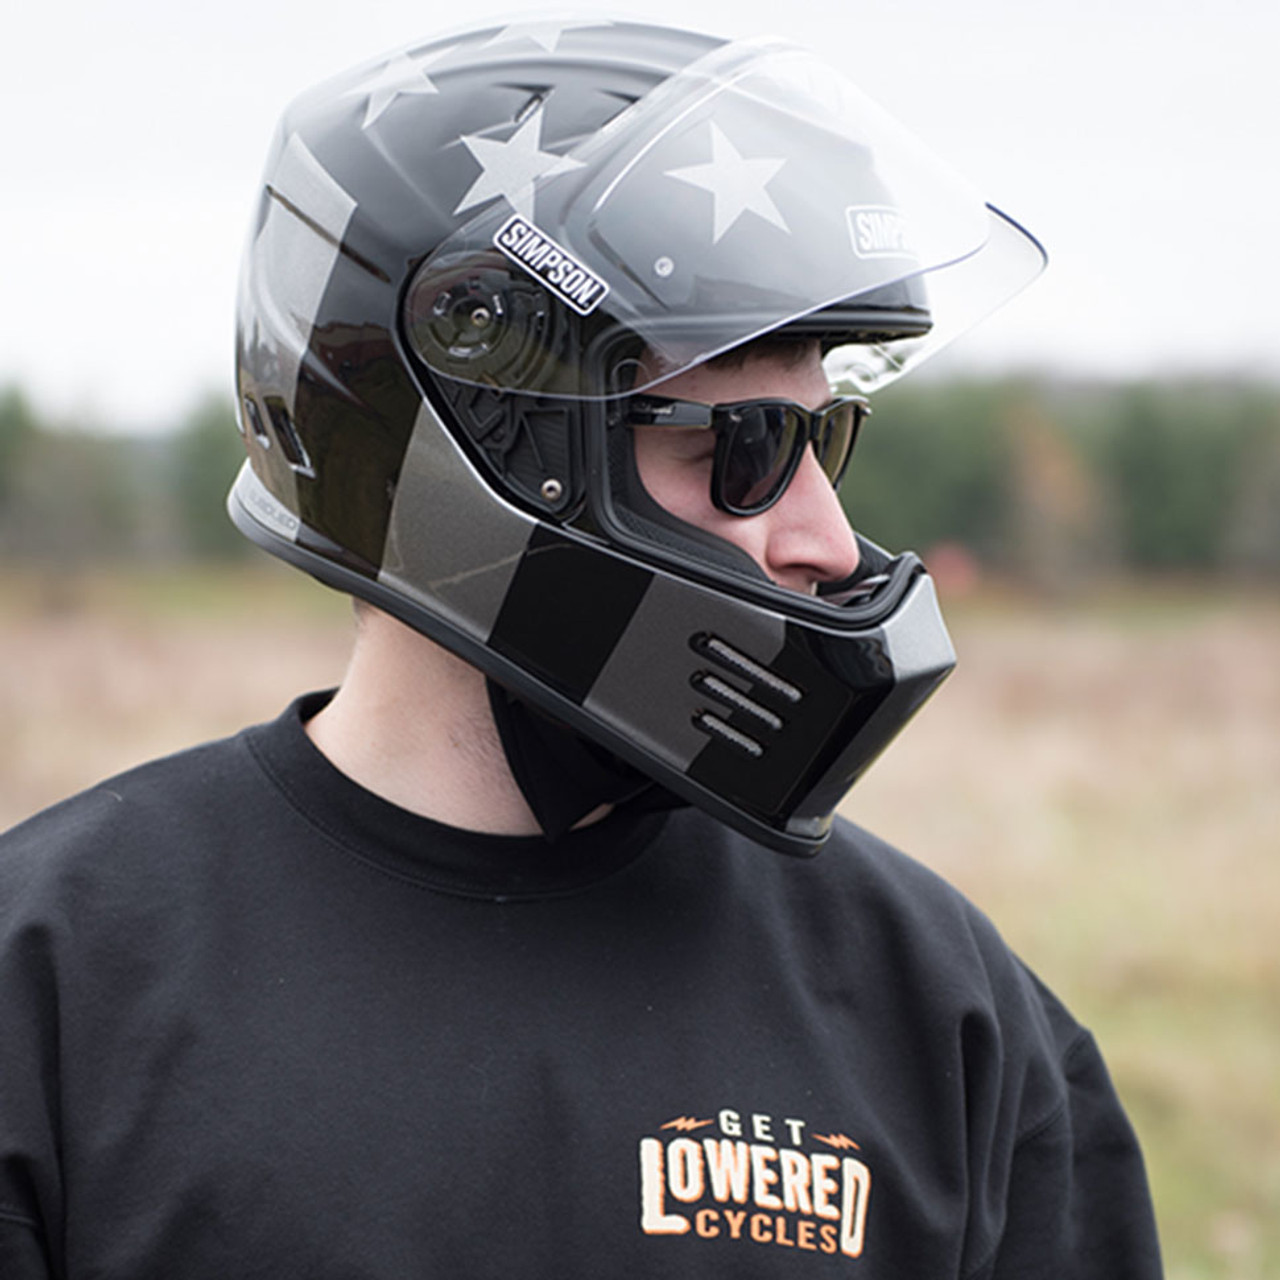 Full Motorcycle Helmet >> Simpson Ghost Bandit Subdued Motorcycle Helmet - Get Lowered Cycles